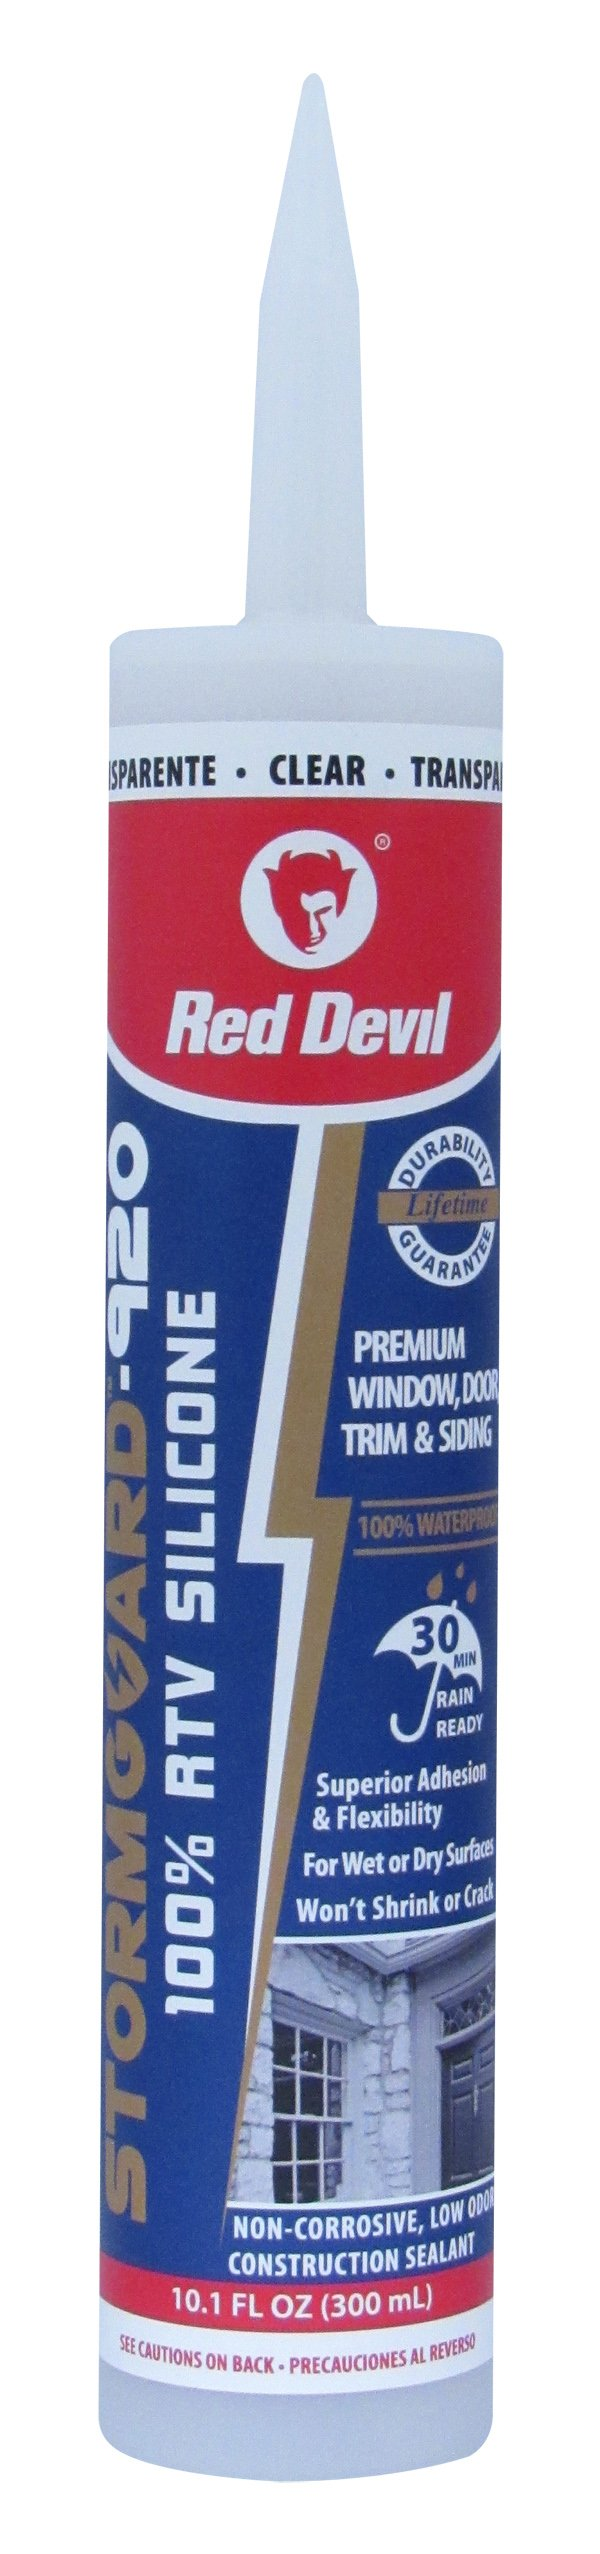 Red Devil 78712 0787 StormGuard-920 100%, Clear, Case of 12 RTV Silicone Sealant, Pack, Piece by Red Devil